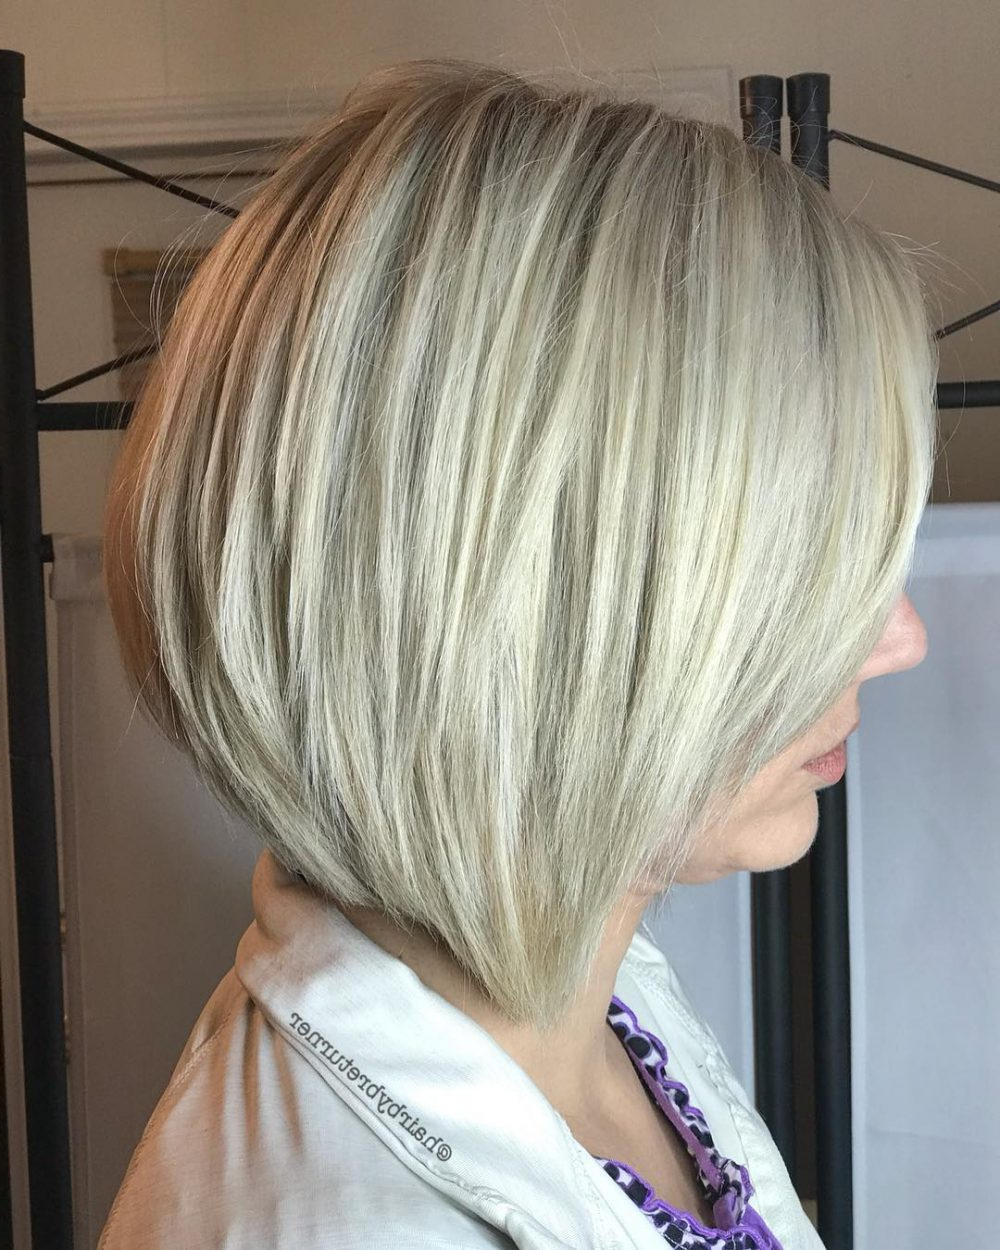 42 Sexiest Short Hairstyles For Women Over 40 In 2018 Within Women Short To Medium Hairstyles (View 8 of 25)